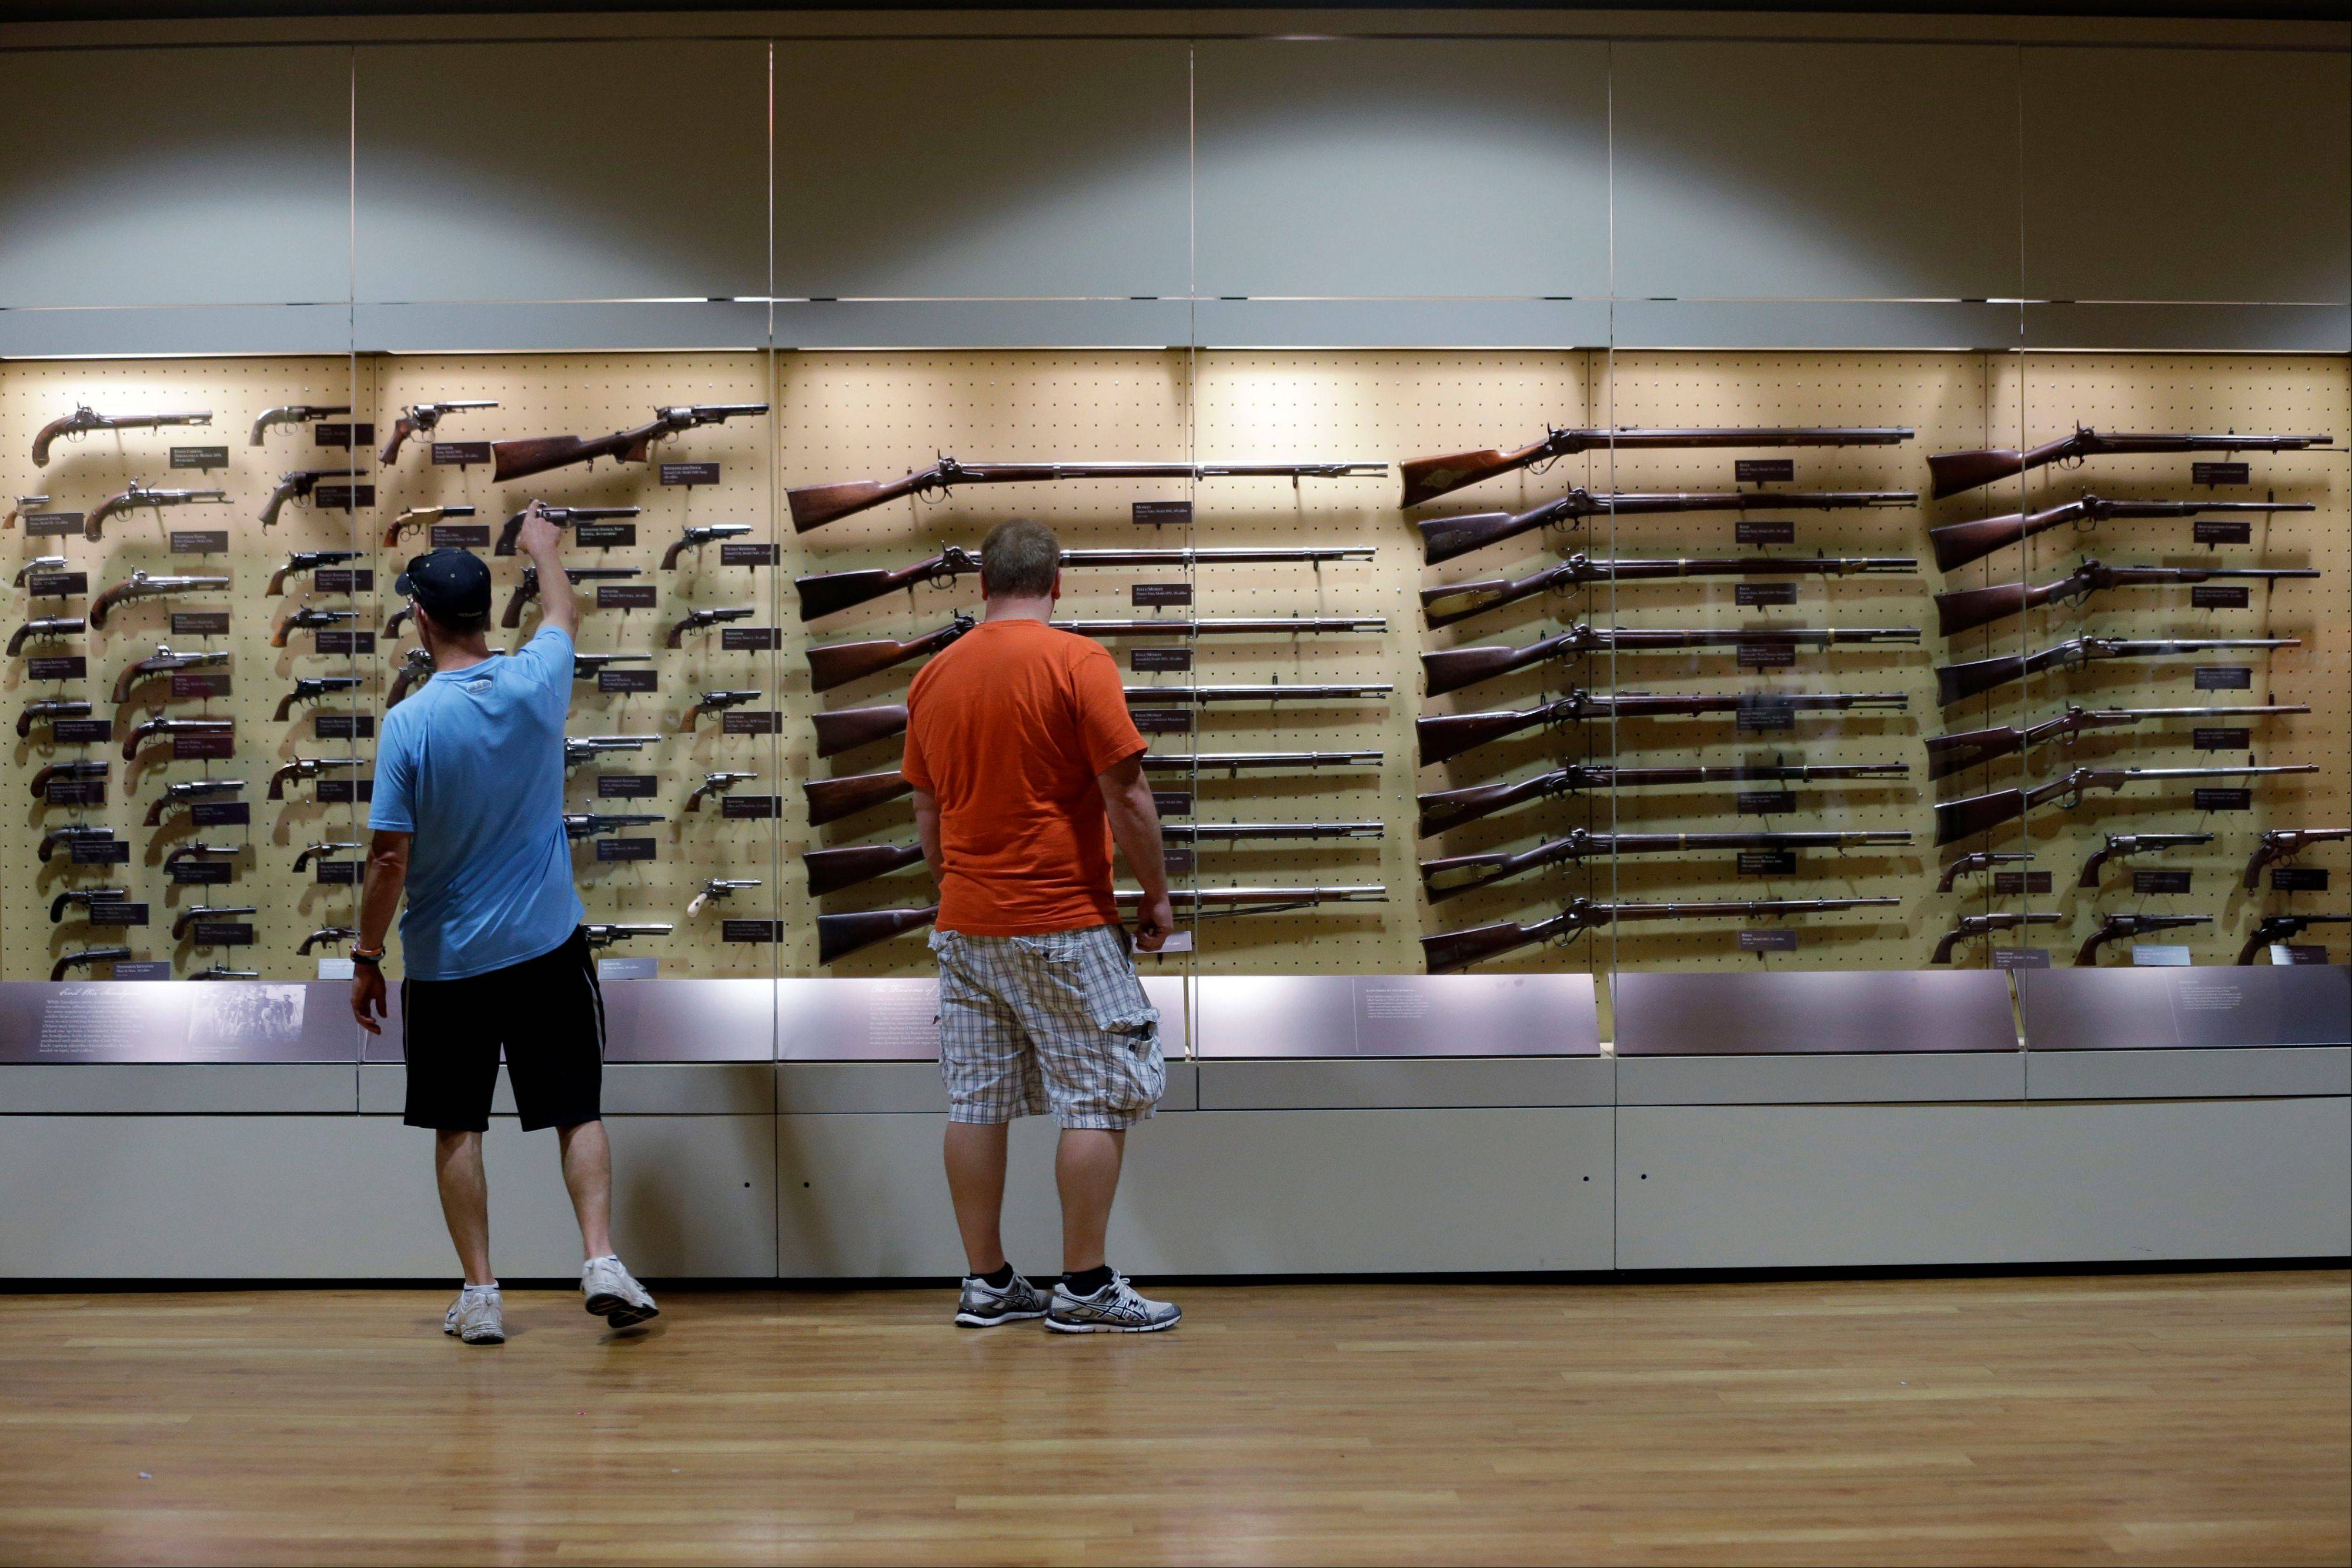 Tourists view Civil War weapons at the Gettysburg National Military Park, Museum & Visitor Center.